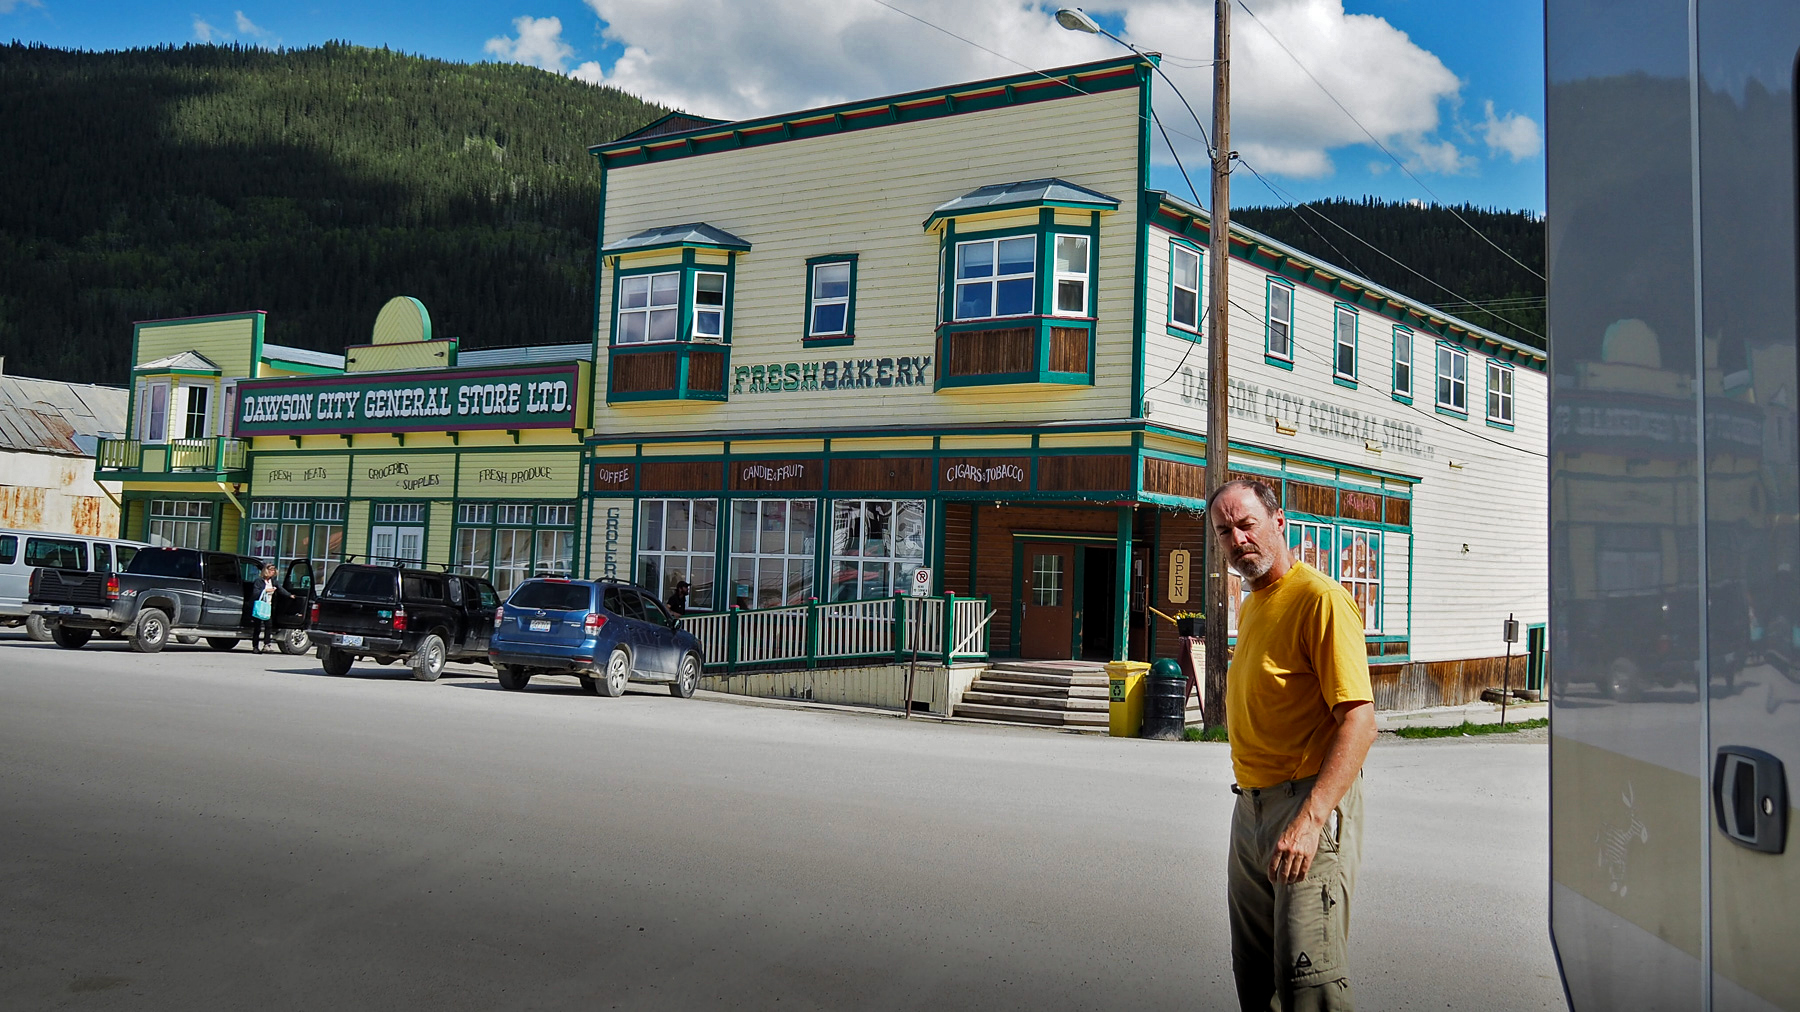 Lichtblick: Bäckerei in Dawson City